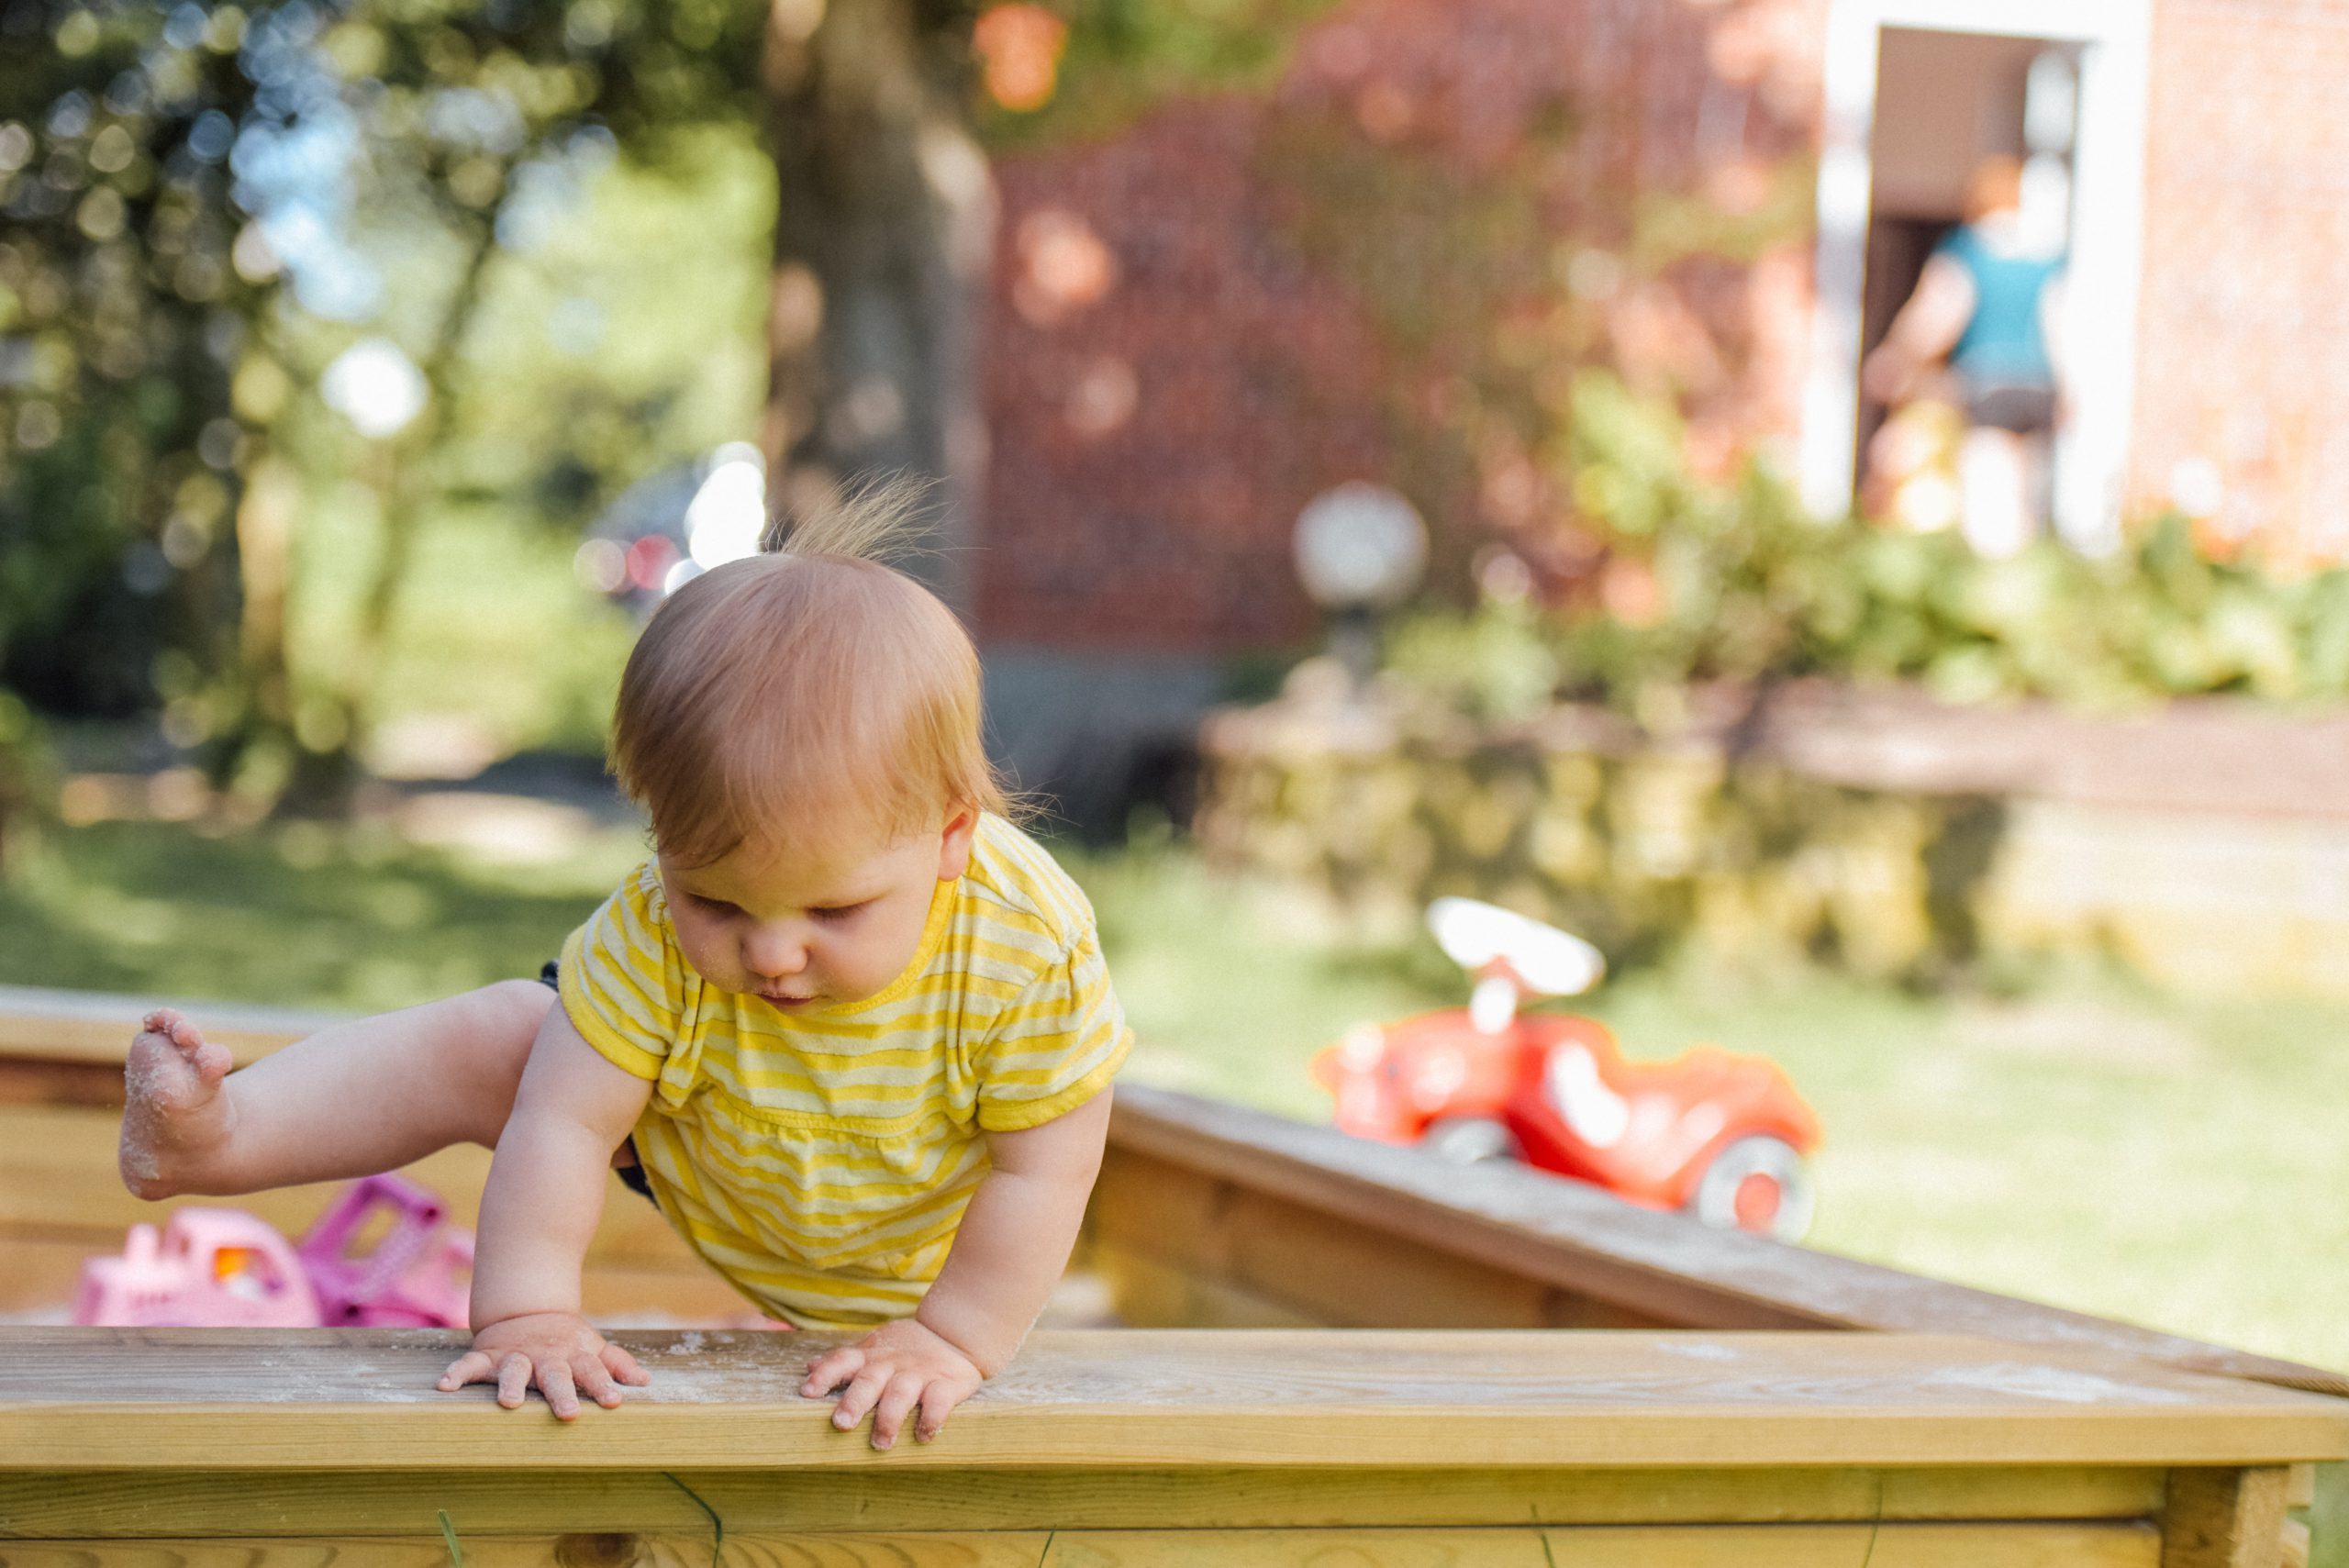 A baby climbing out of a play pen